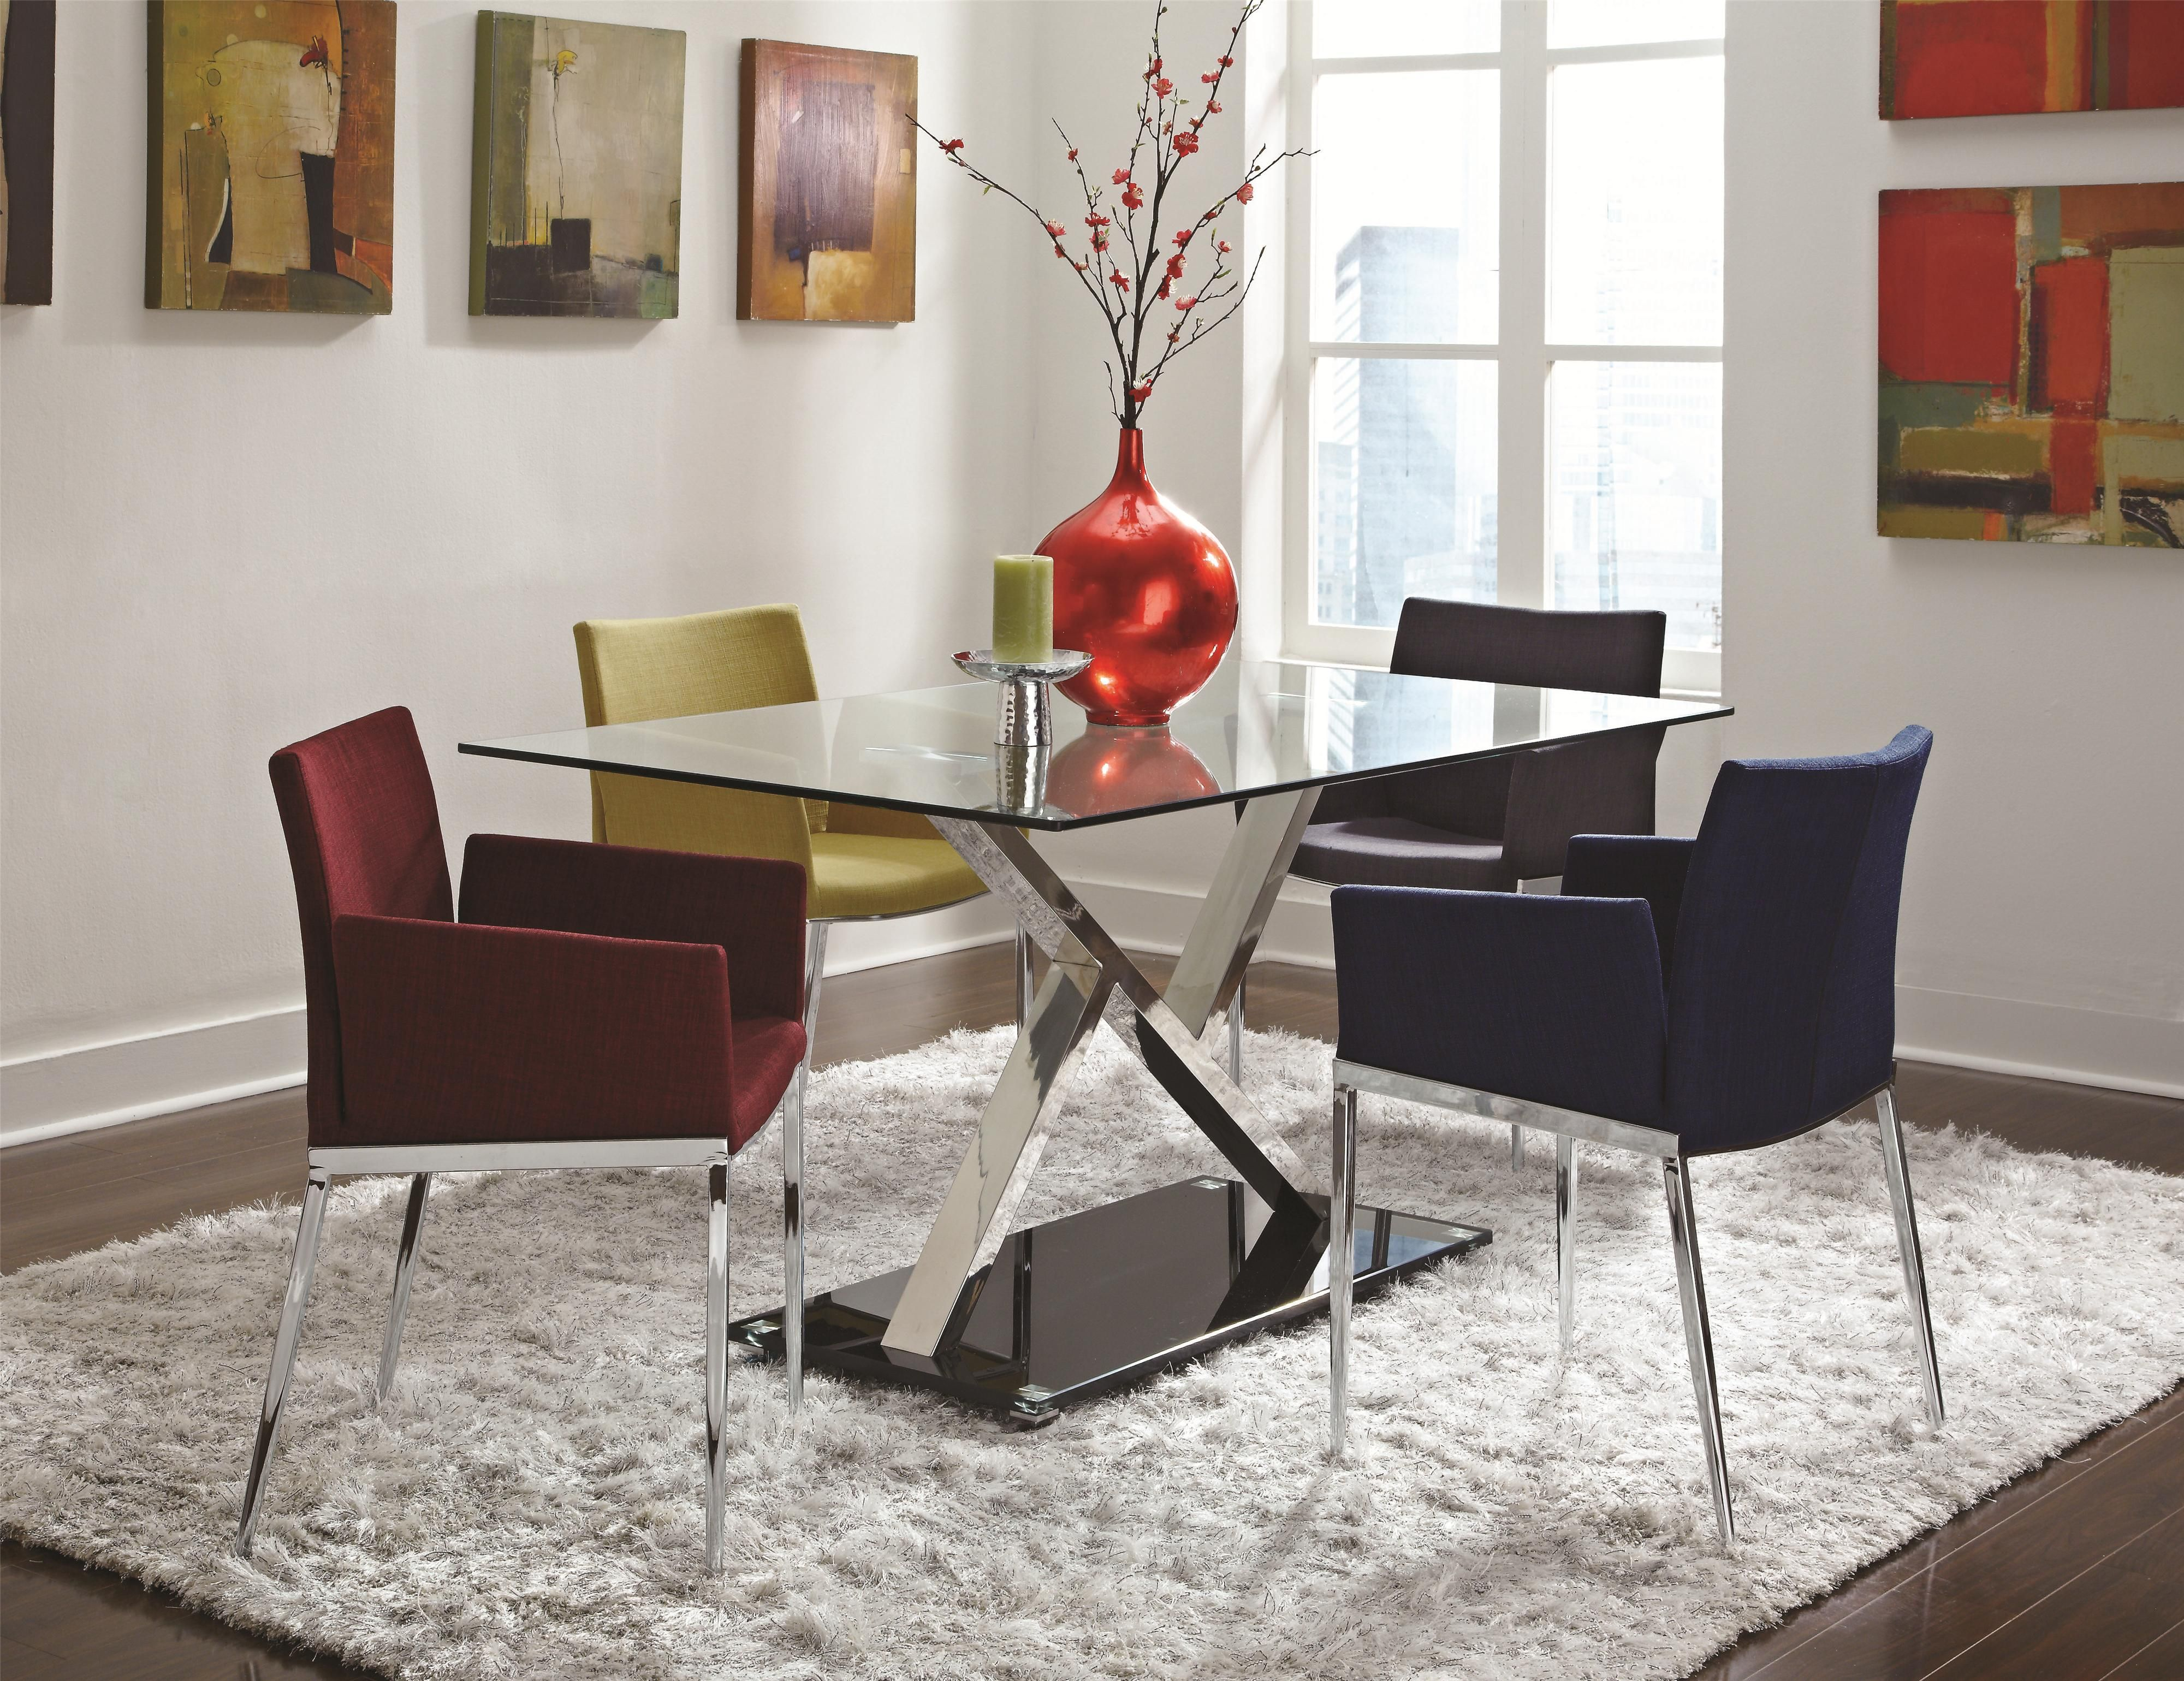 Cappuccino Solid Wood Dinette Sets Plus Rug And Glass Top Table For - Solid wood dinette table